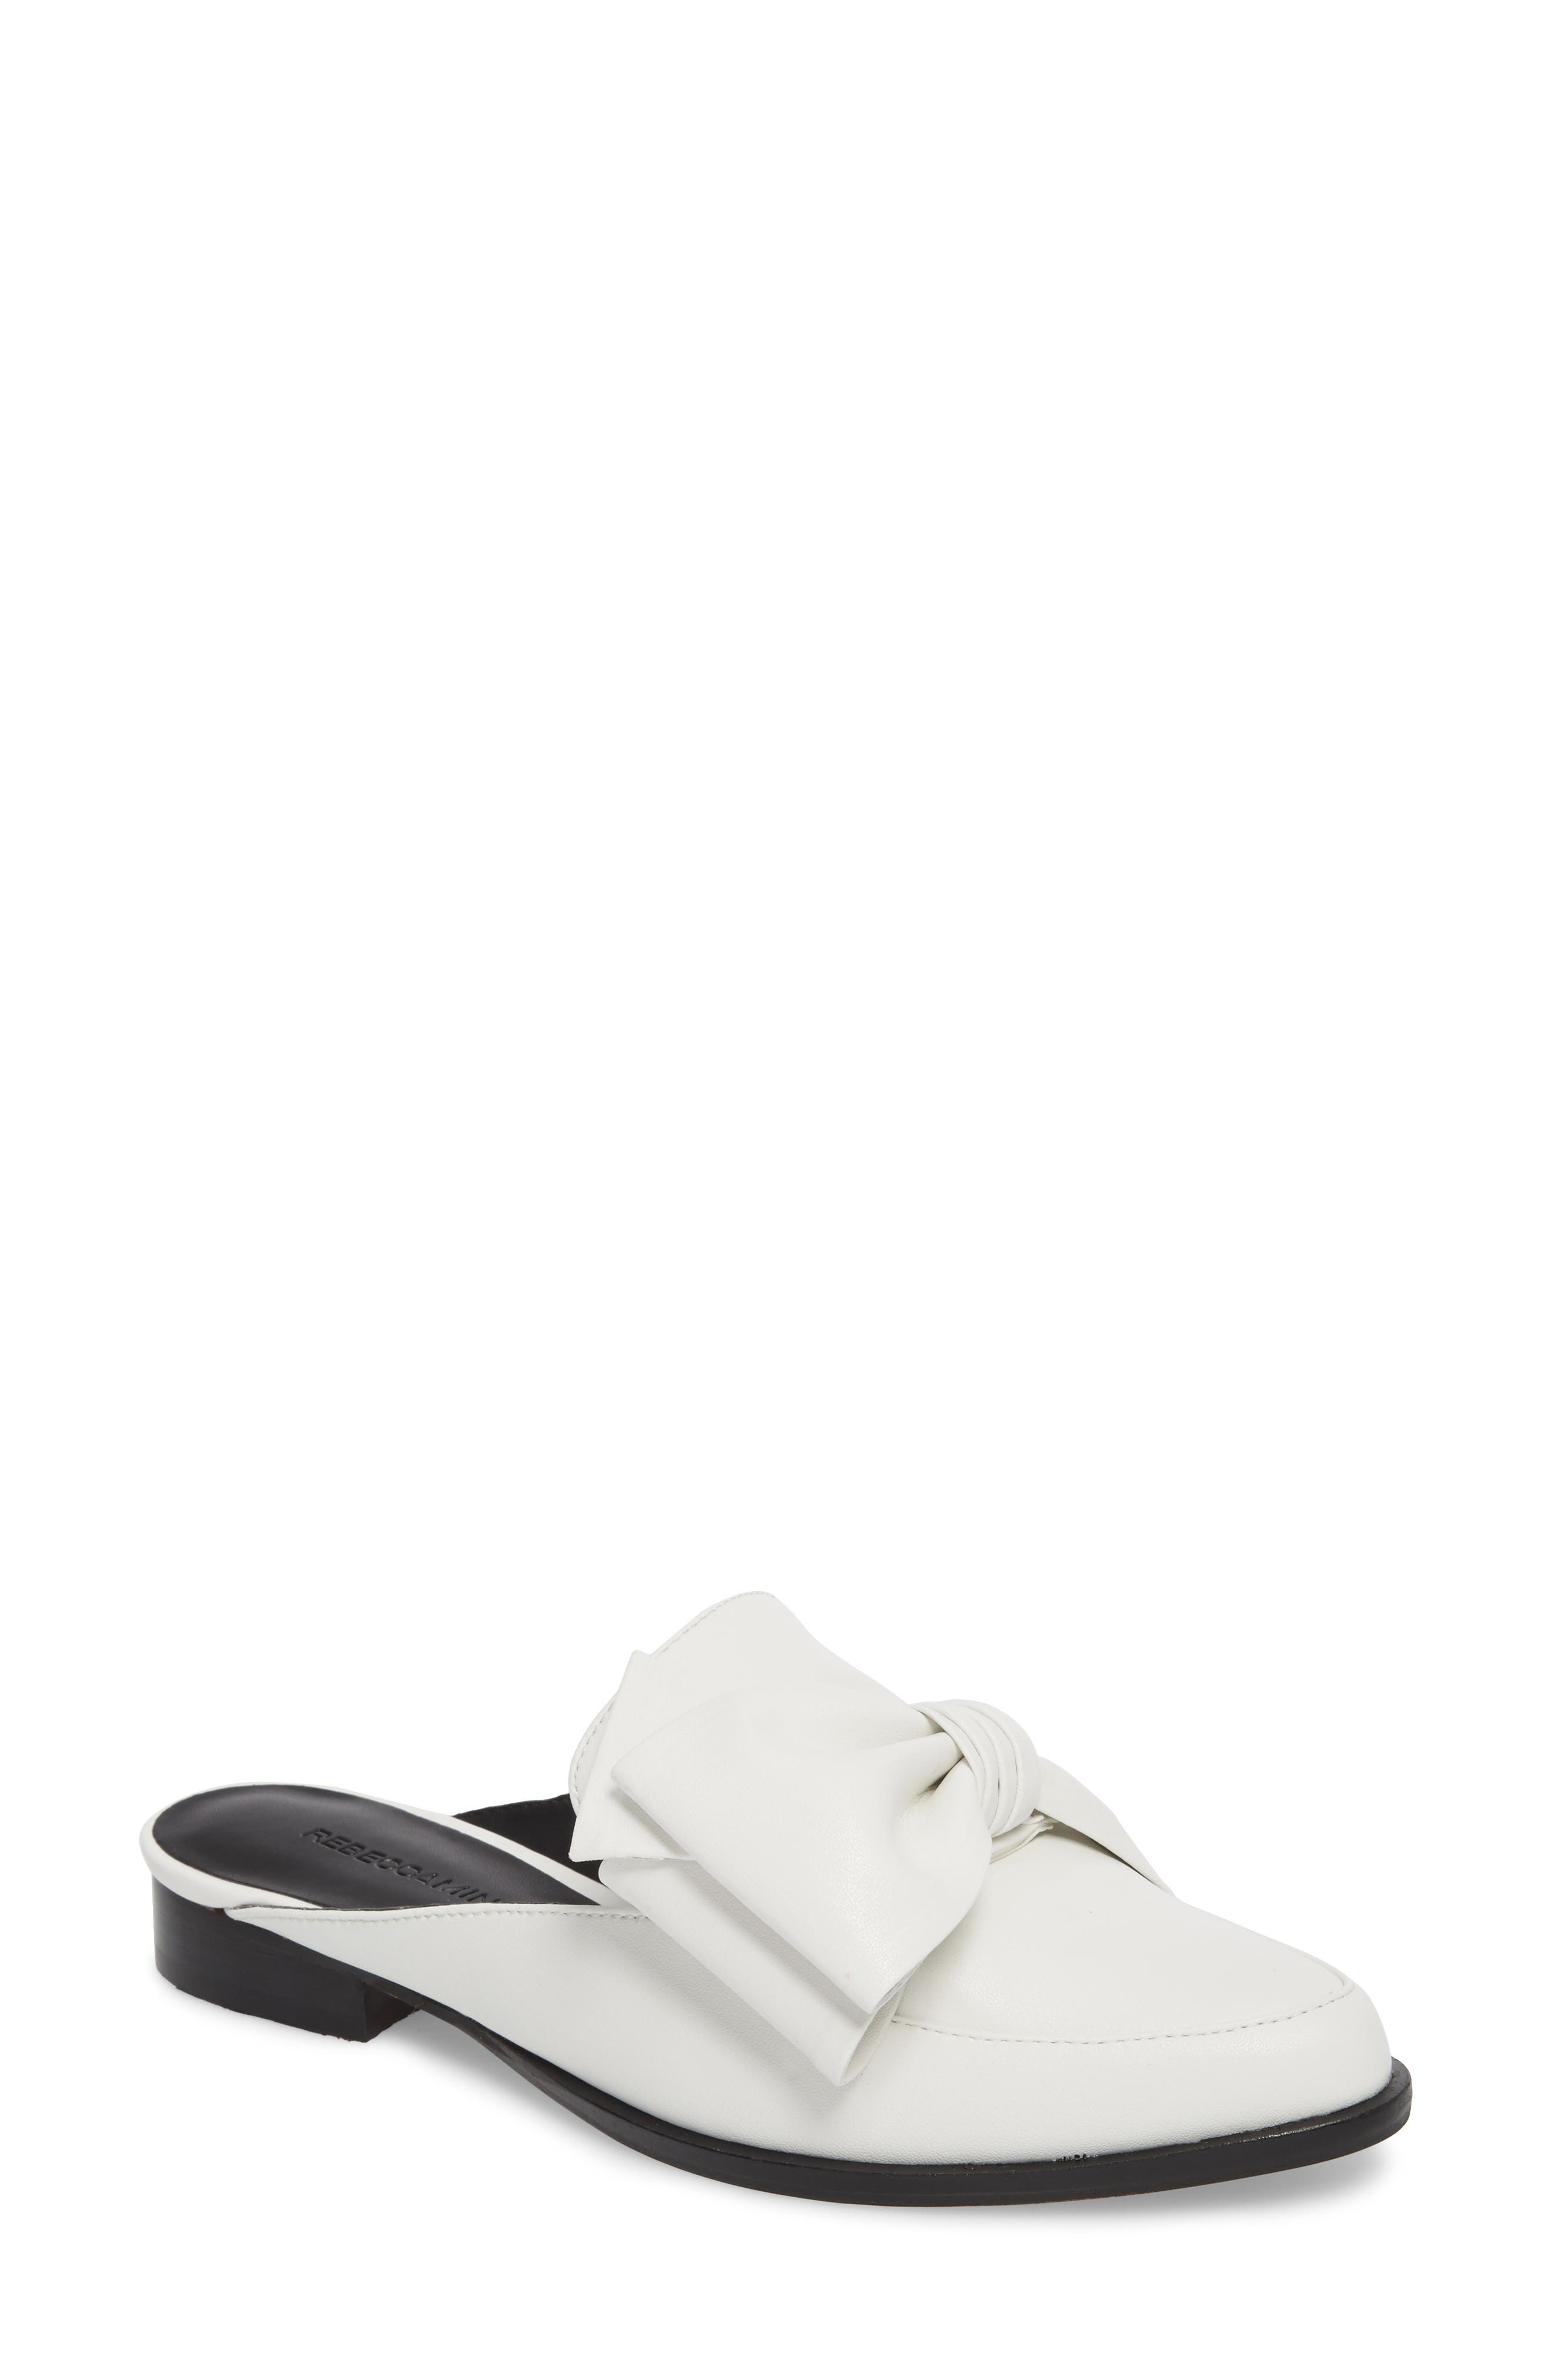 Mabel Loafer Mule,                         Main,                         color, OPTIC WHITE LEATHER